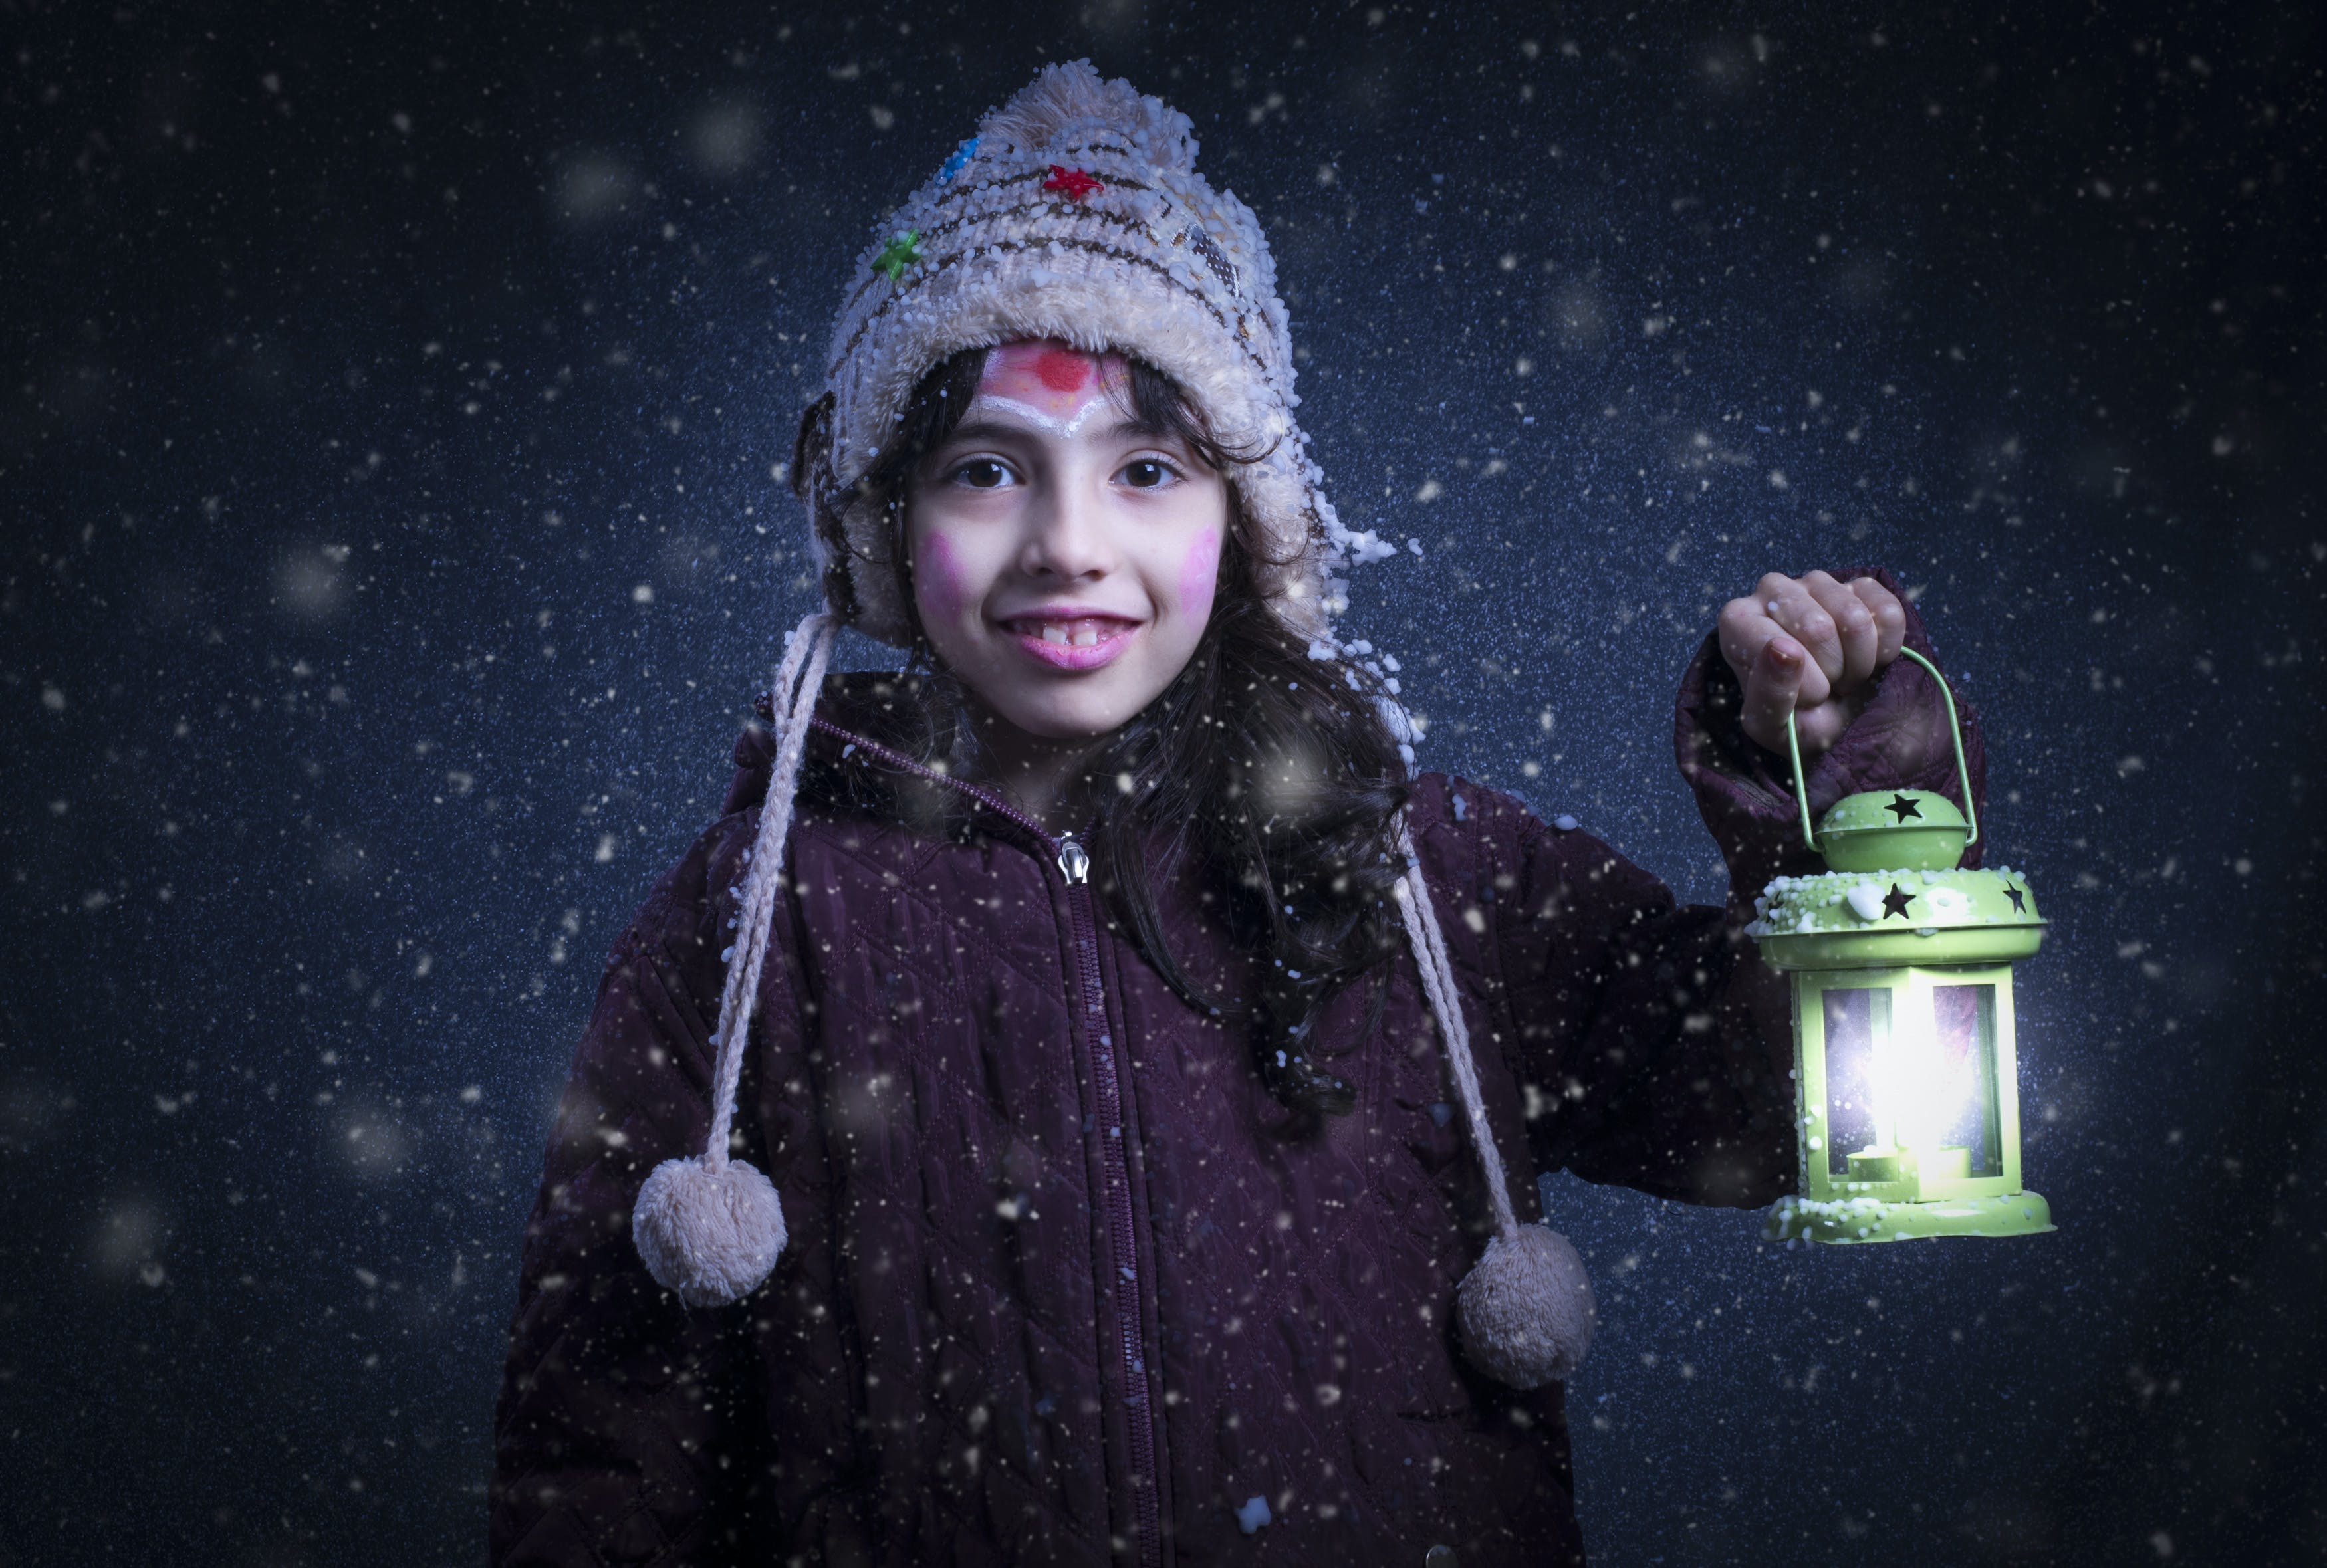 Girl Holding Green Lantern Lamp